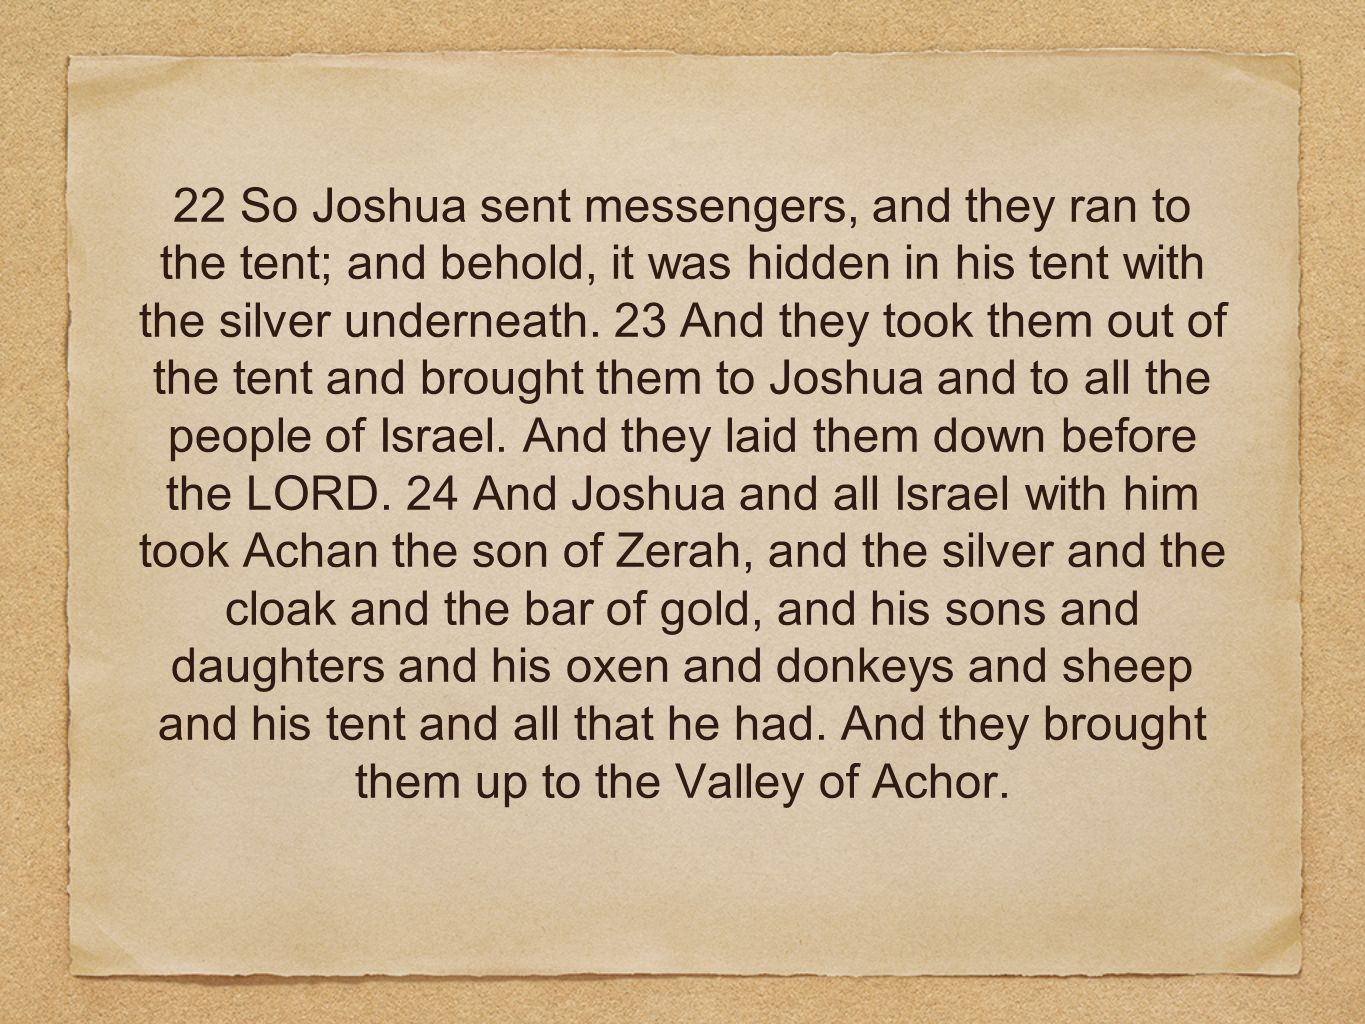 22 So Joshua sent messengers, and they ran to the tent; and behold, it was hidden in his tent with the silver underneath. 23 And they took them out of